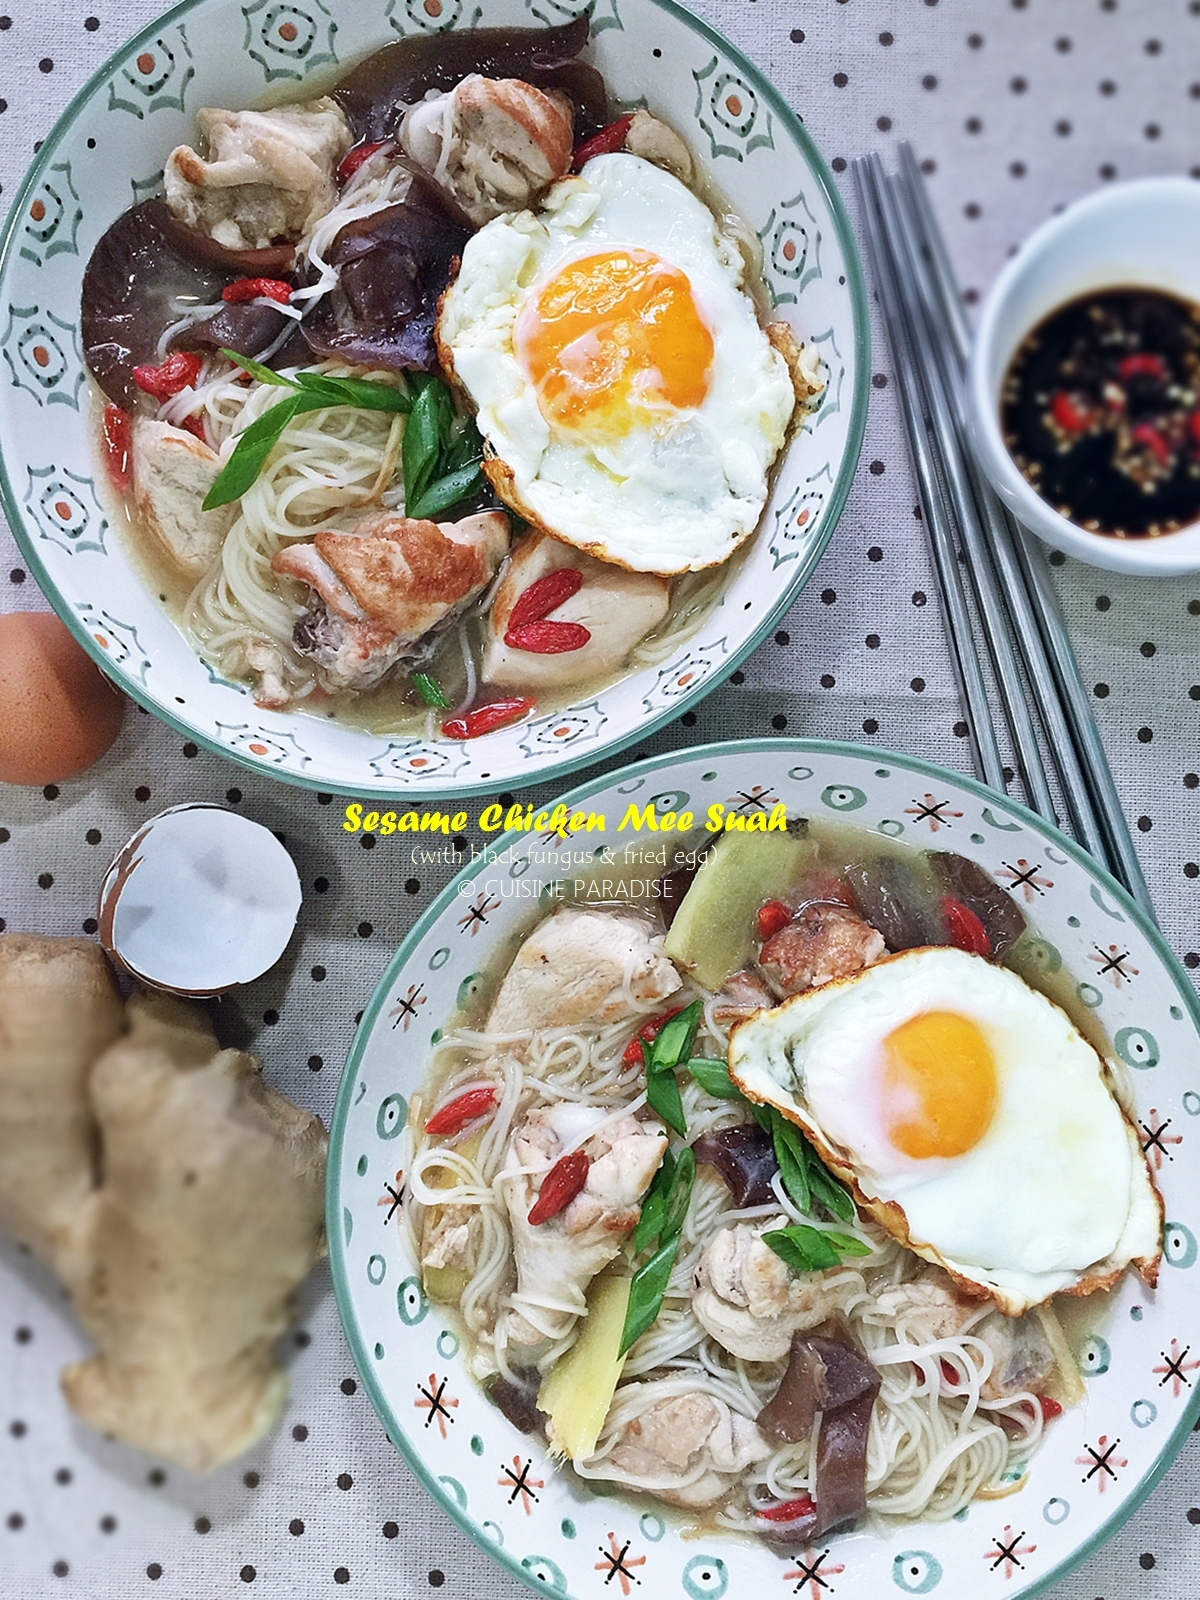 Cuisine paradise singapore food blog recipes reviews and recipes sesame chicken mee suah forumfinder Choice Image